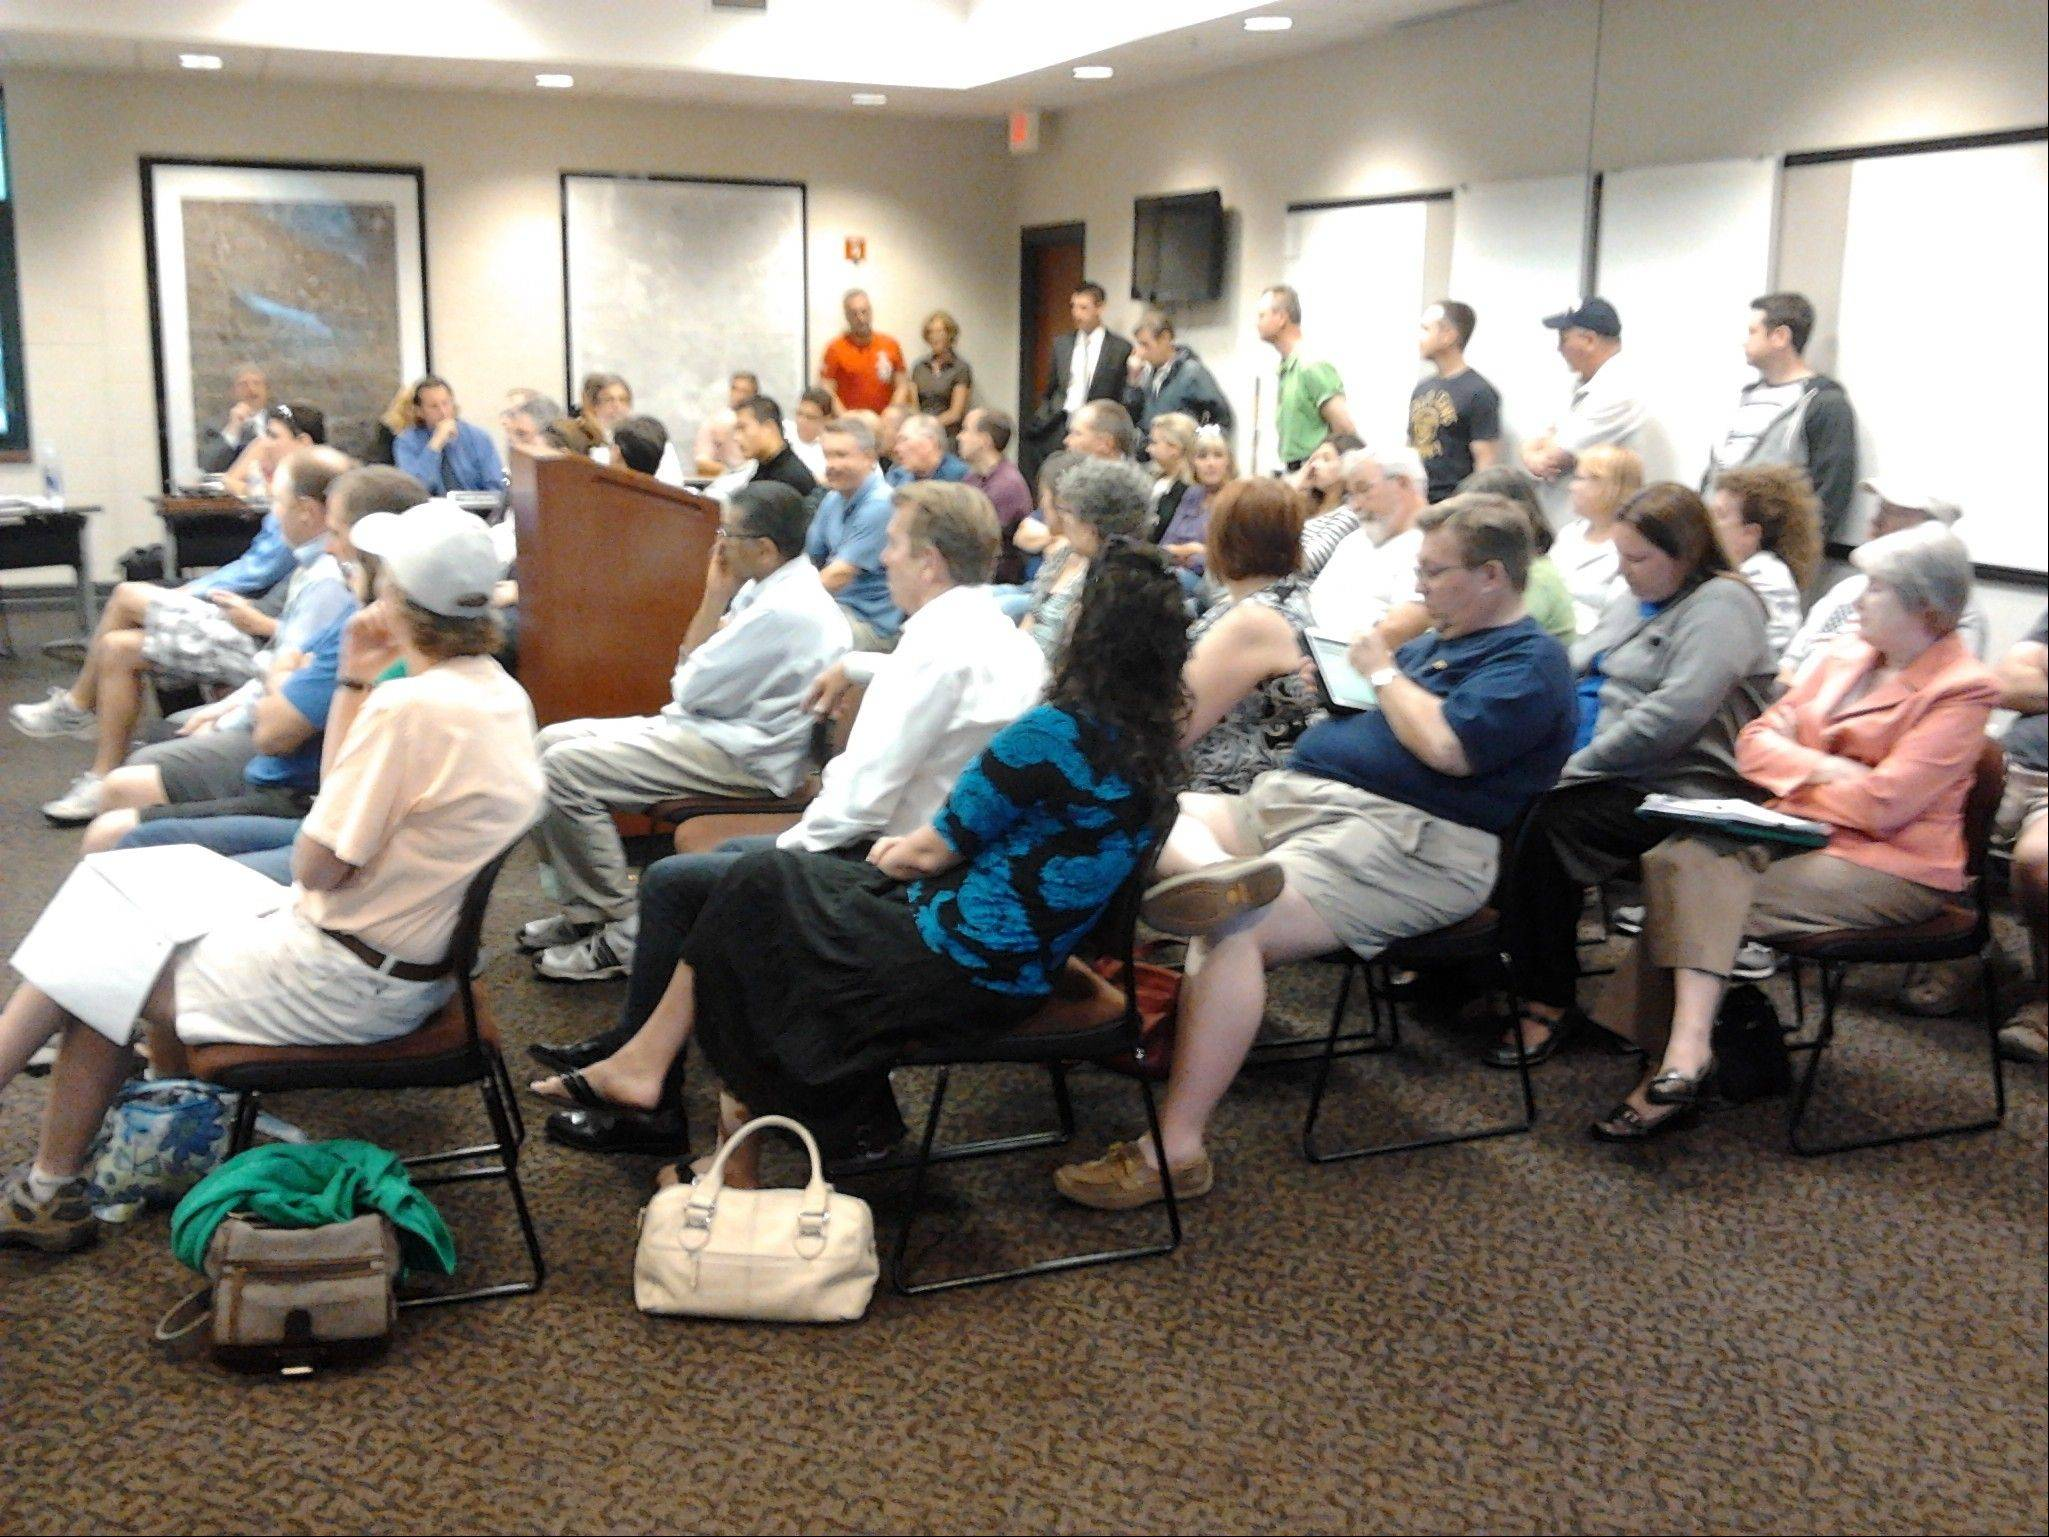 About 50 residents attended Monday's Lake Zurich village board meeting with concern over last week's flooding.